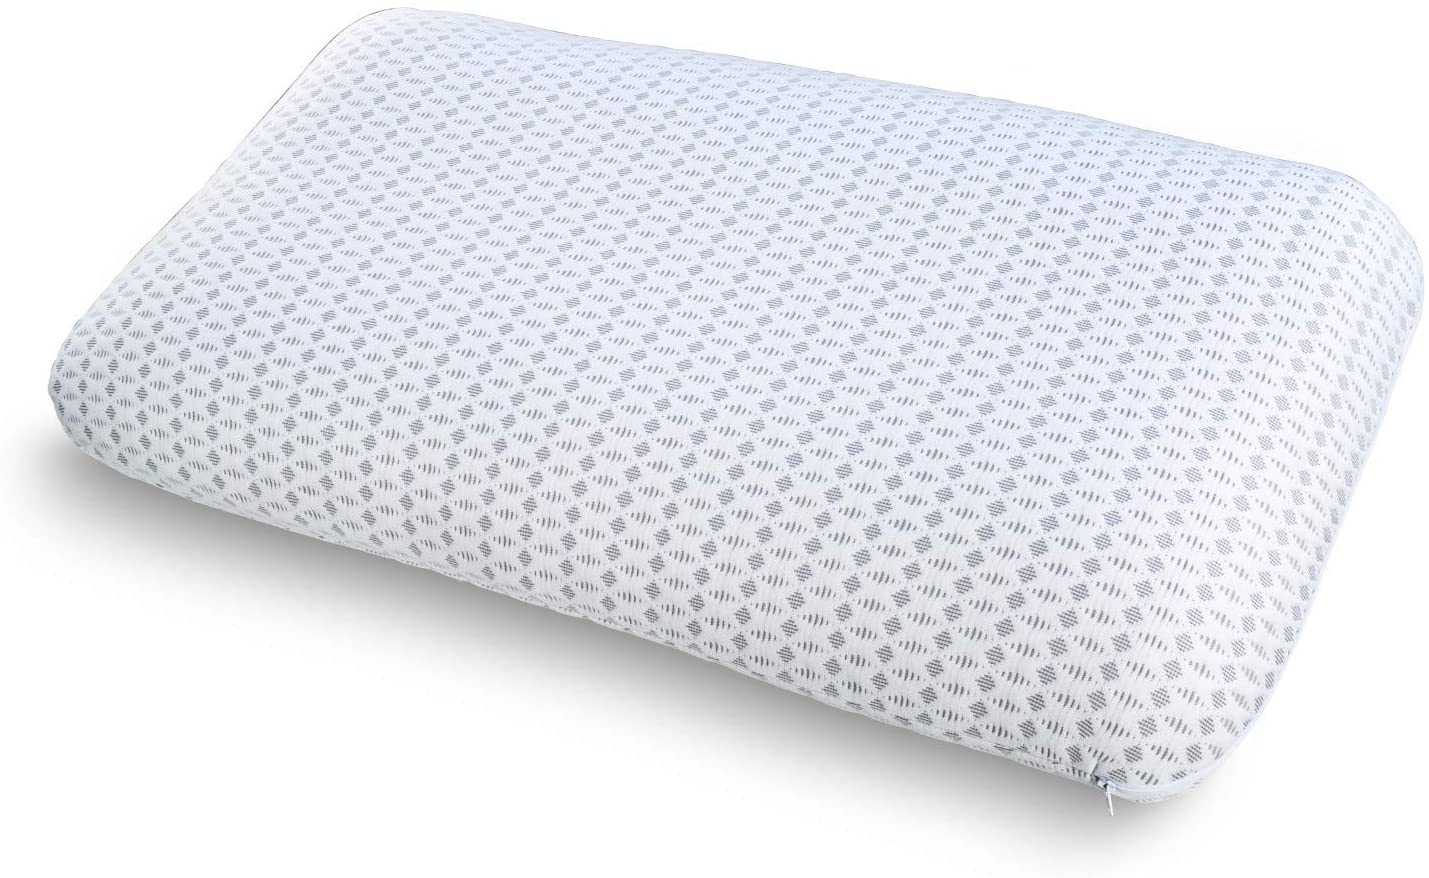 Ambesonne Orthopedic Foam Pillow with Air Pockets and Decorative Cover, Adjustable Oversized Padding Non-Reclaimed Visco%100 Polyester Sham Removable and Washable, 36